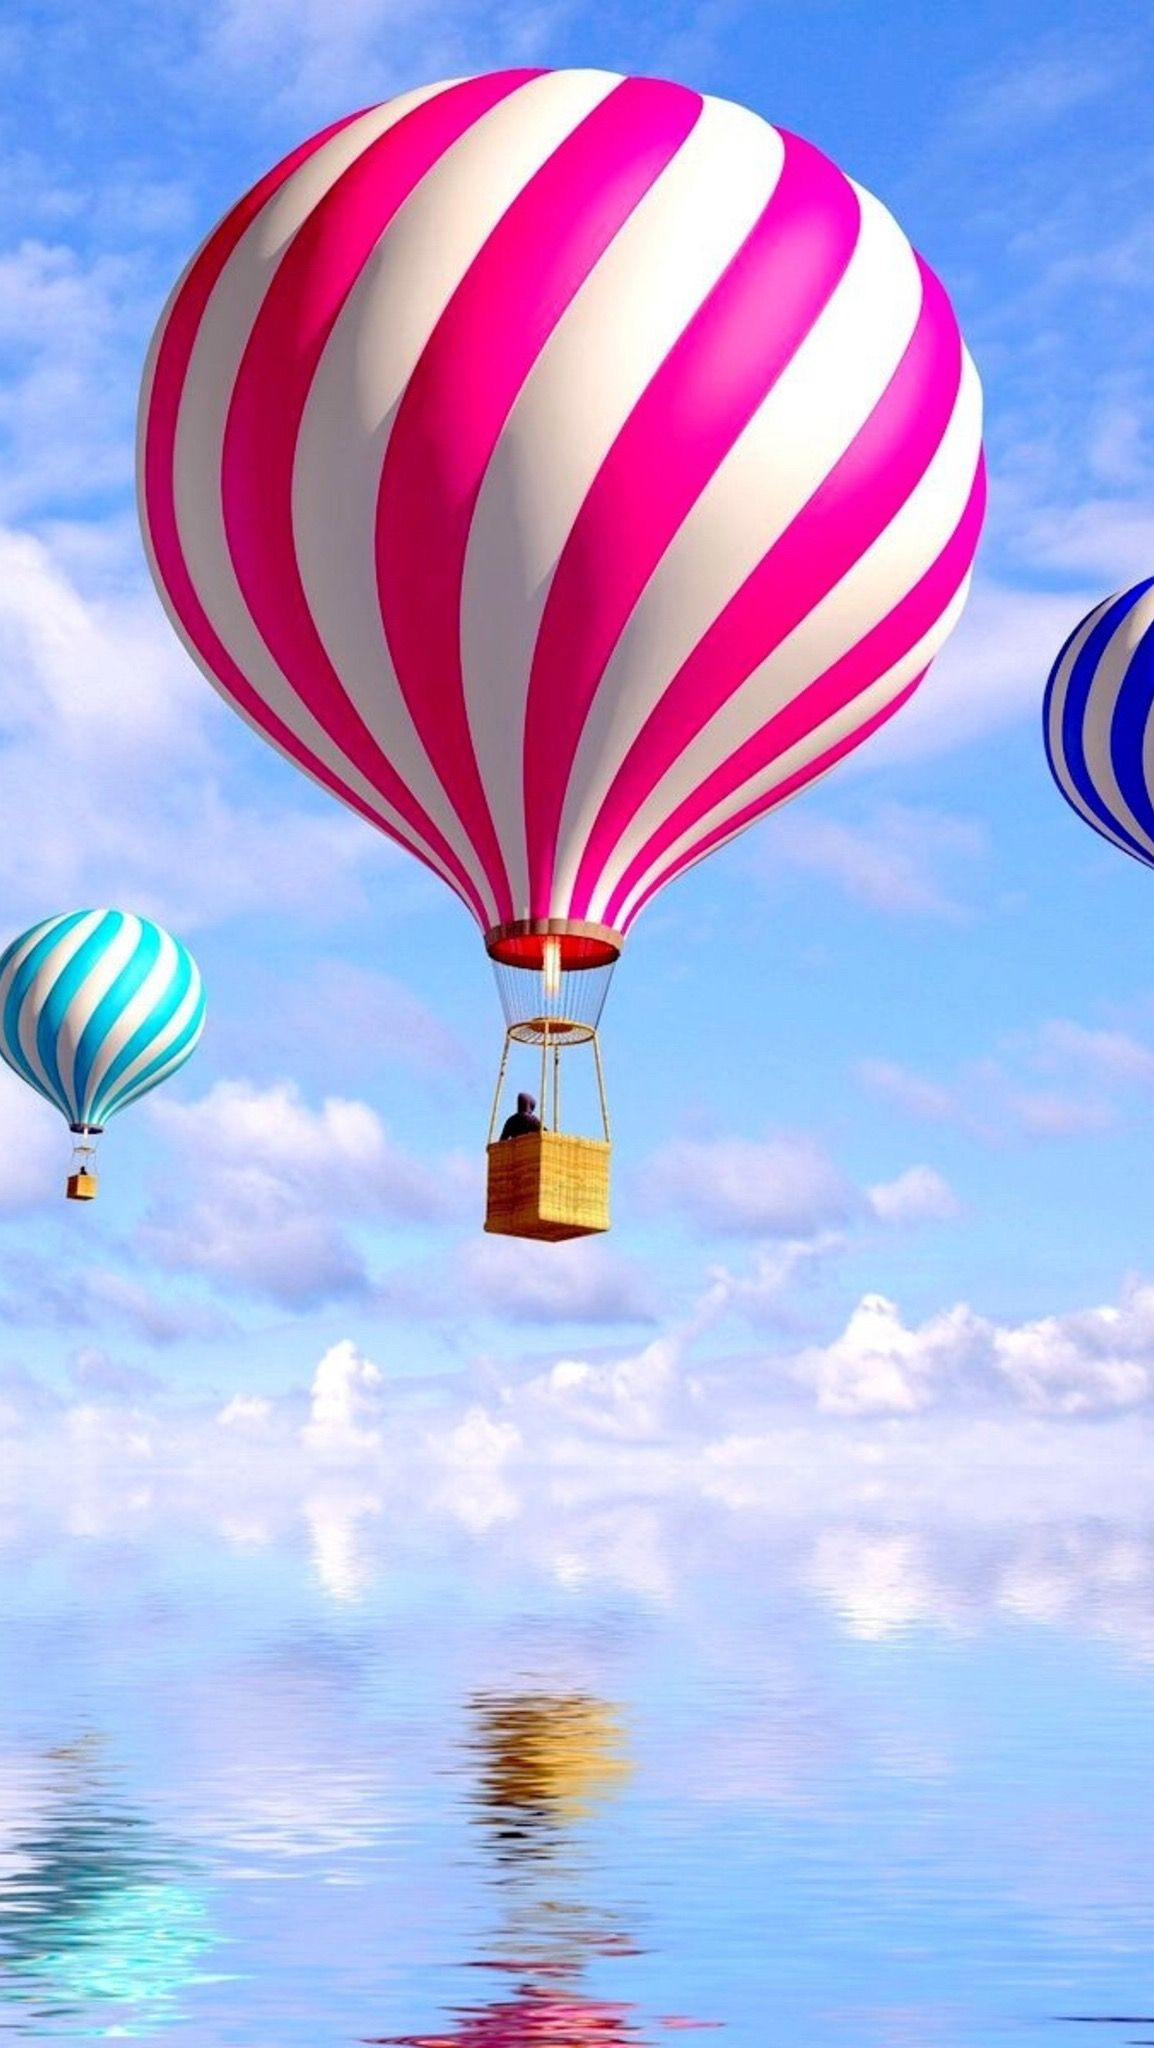 Hd Iphone Wallpaper Hot Air Balloon Hot Air Balloon Hot